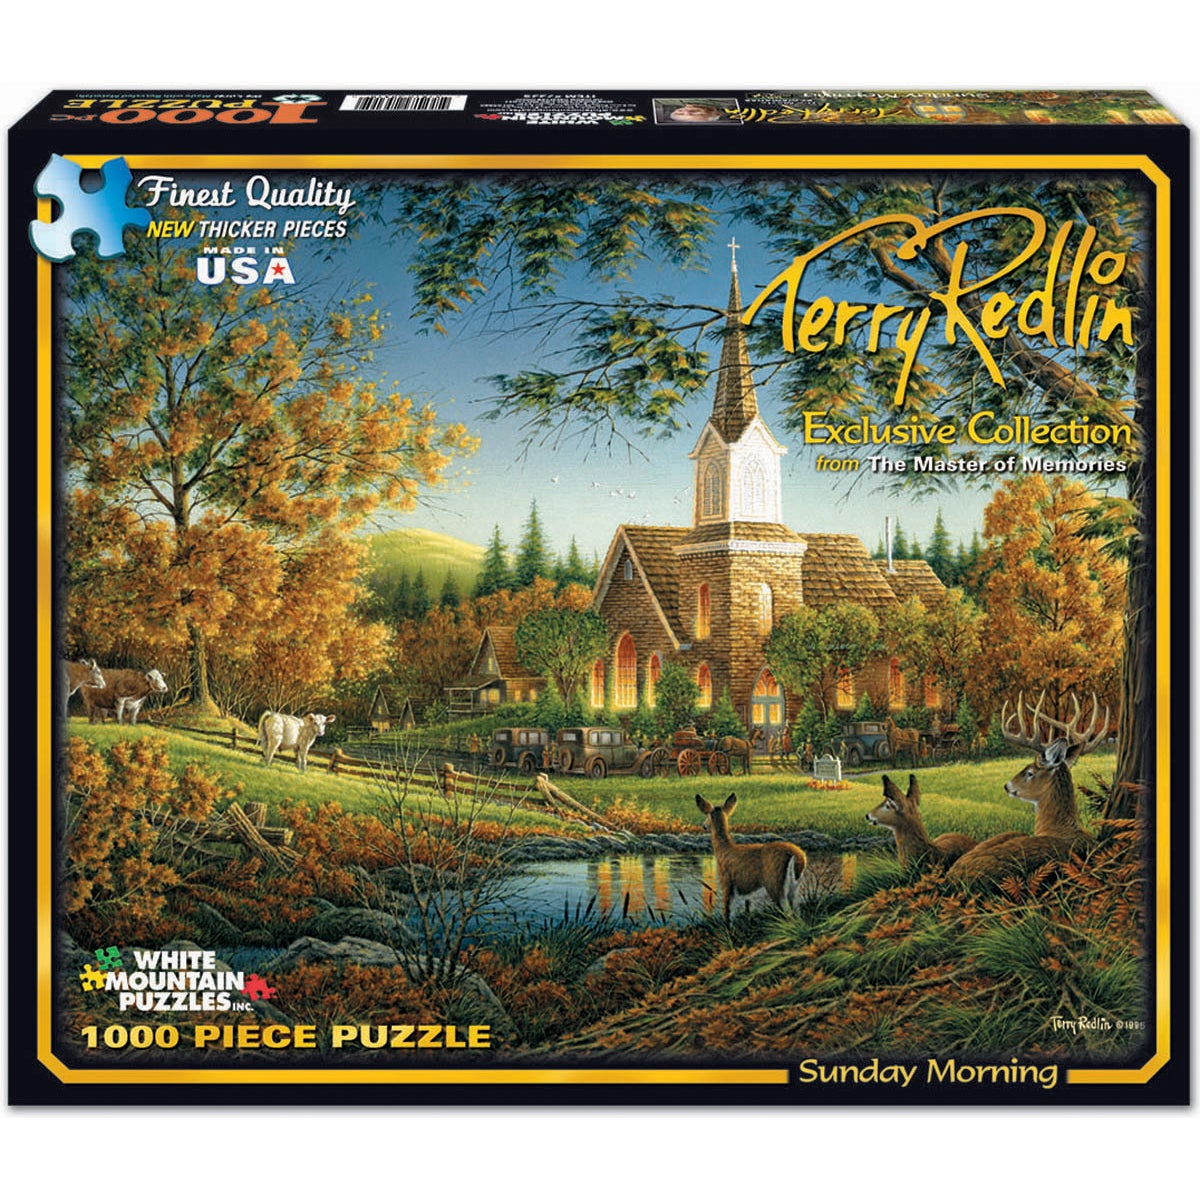 White Mountains Puzzles 1000-piece Jigsaw Puzzle